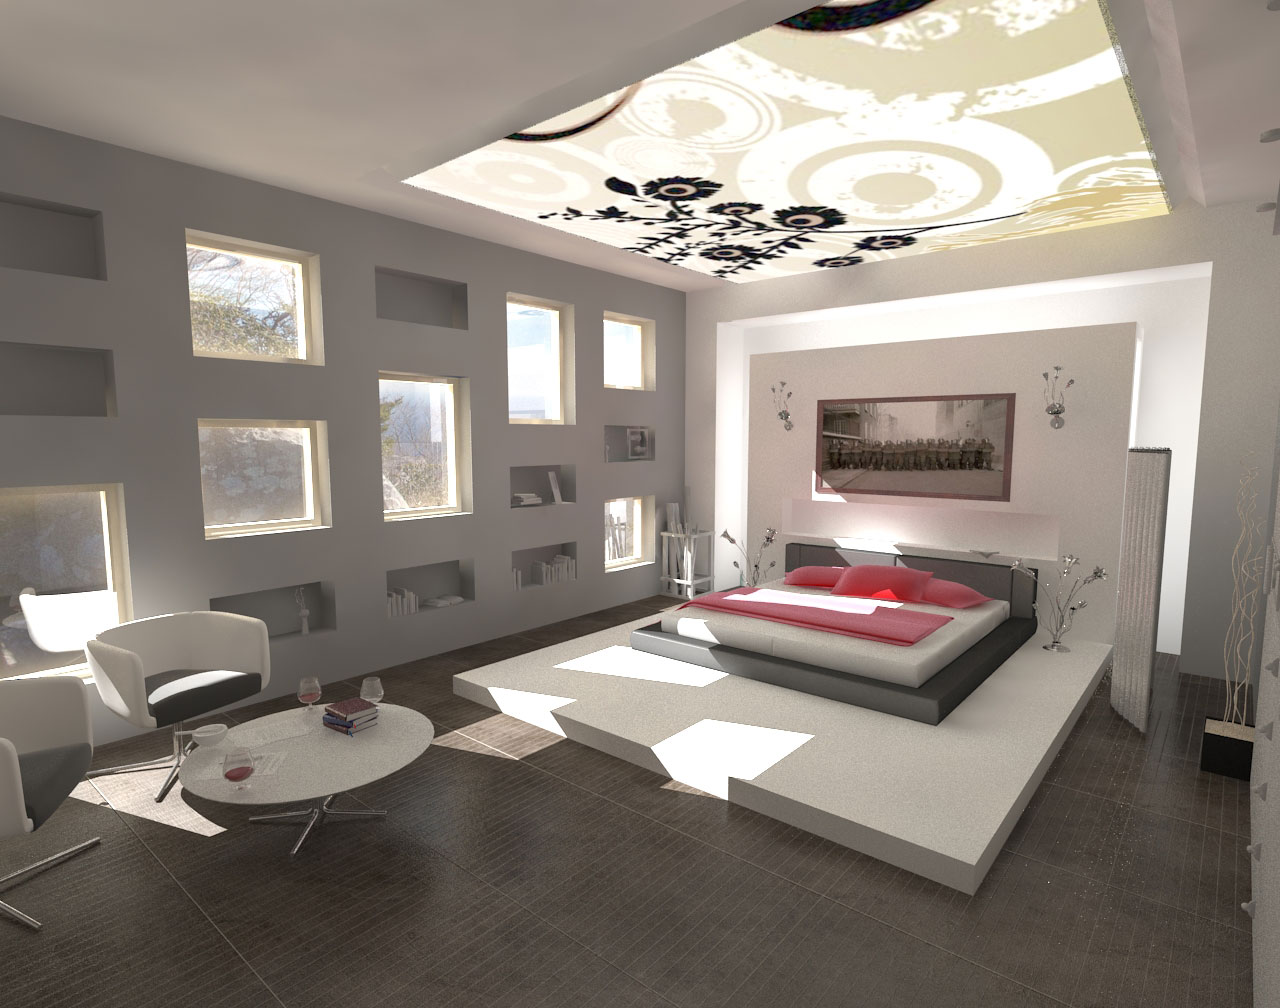 Decorations minimalist design modern bedroom interior for Bedroom interior pictures